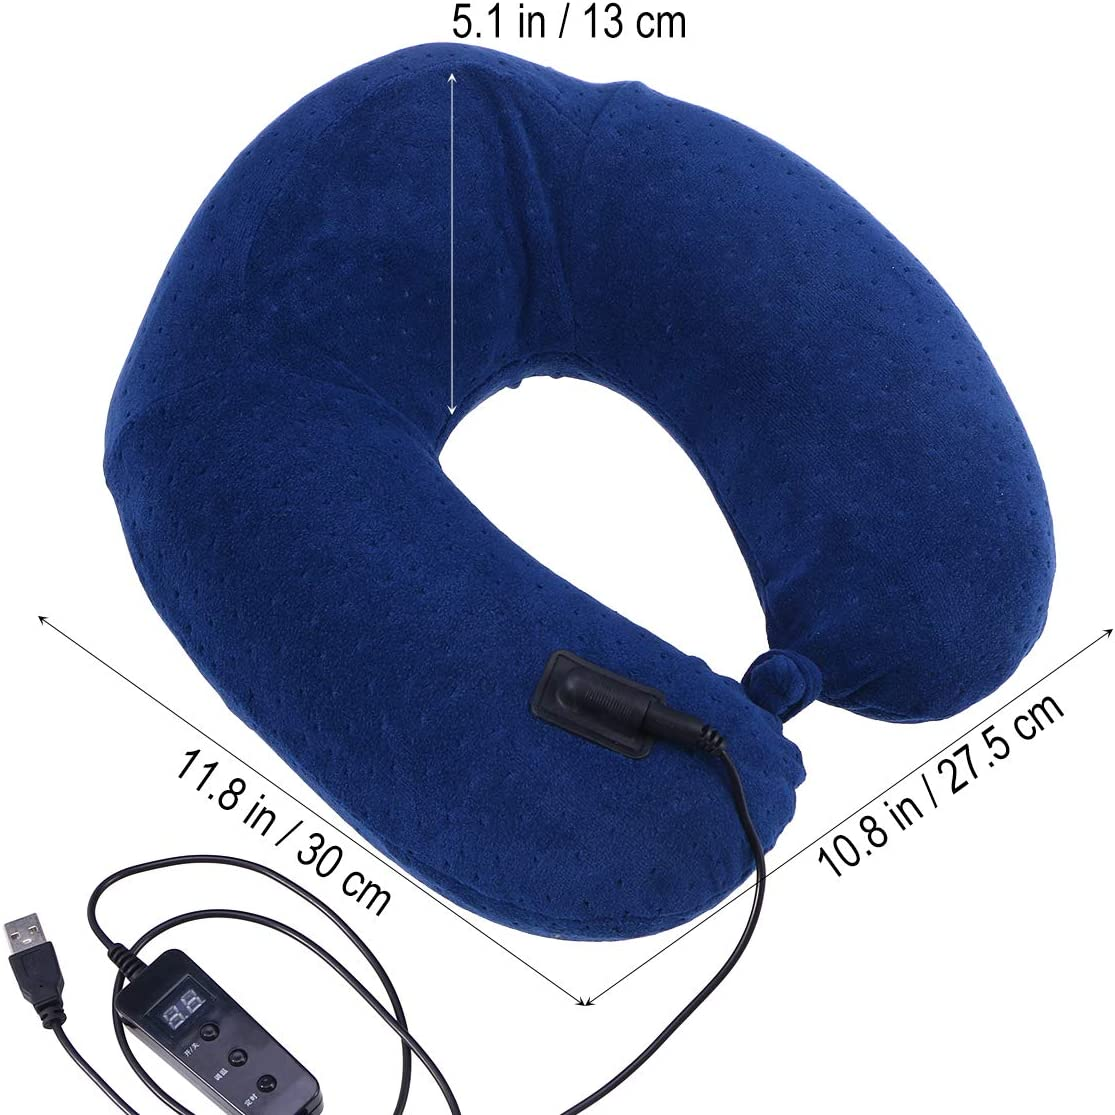 Navy HEALIFTY USB Heatable Pillow U-shaped Travel Pillow Support Cushion Travel Pillow for Home or Office without Battery